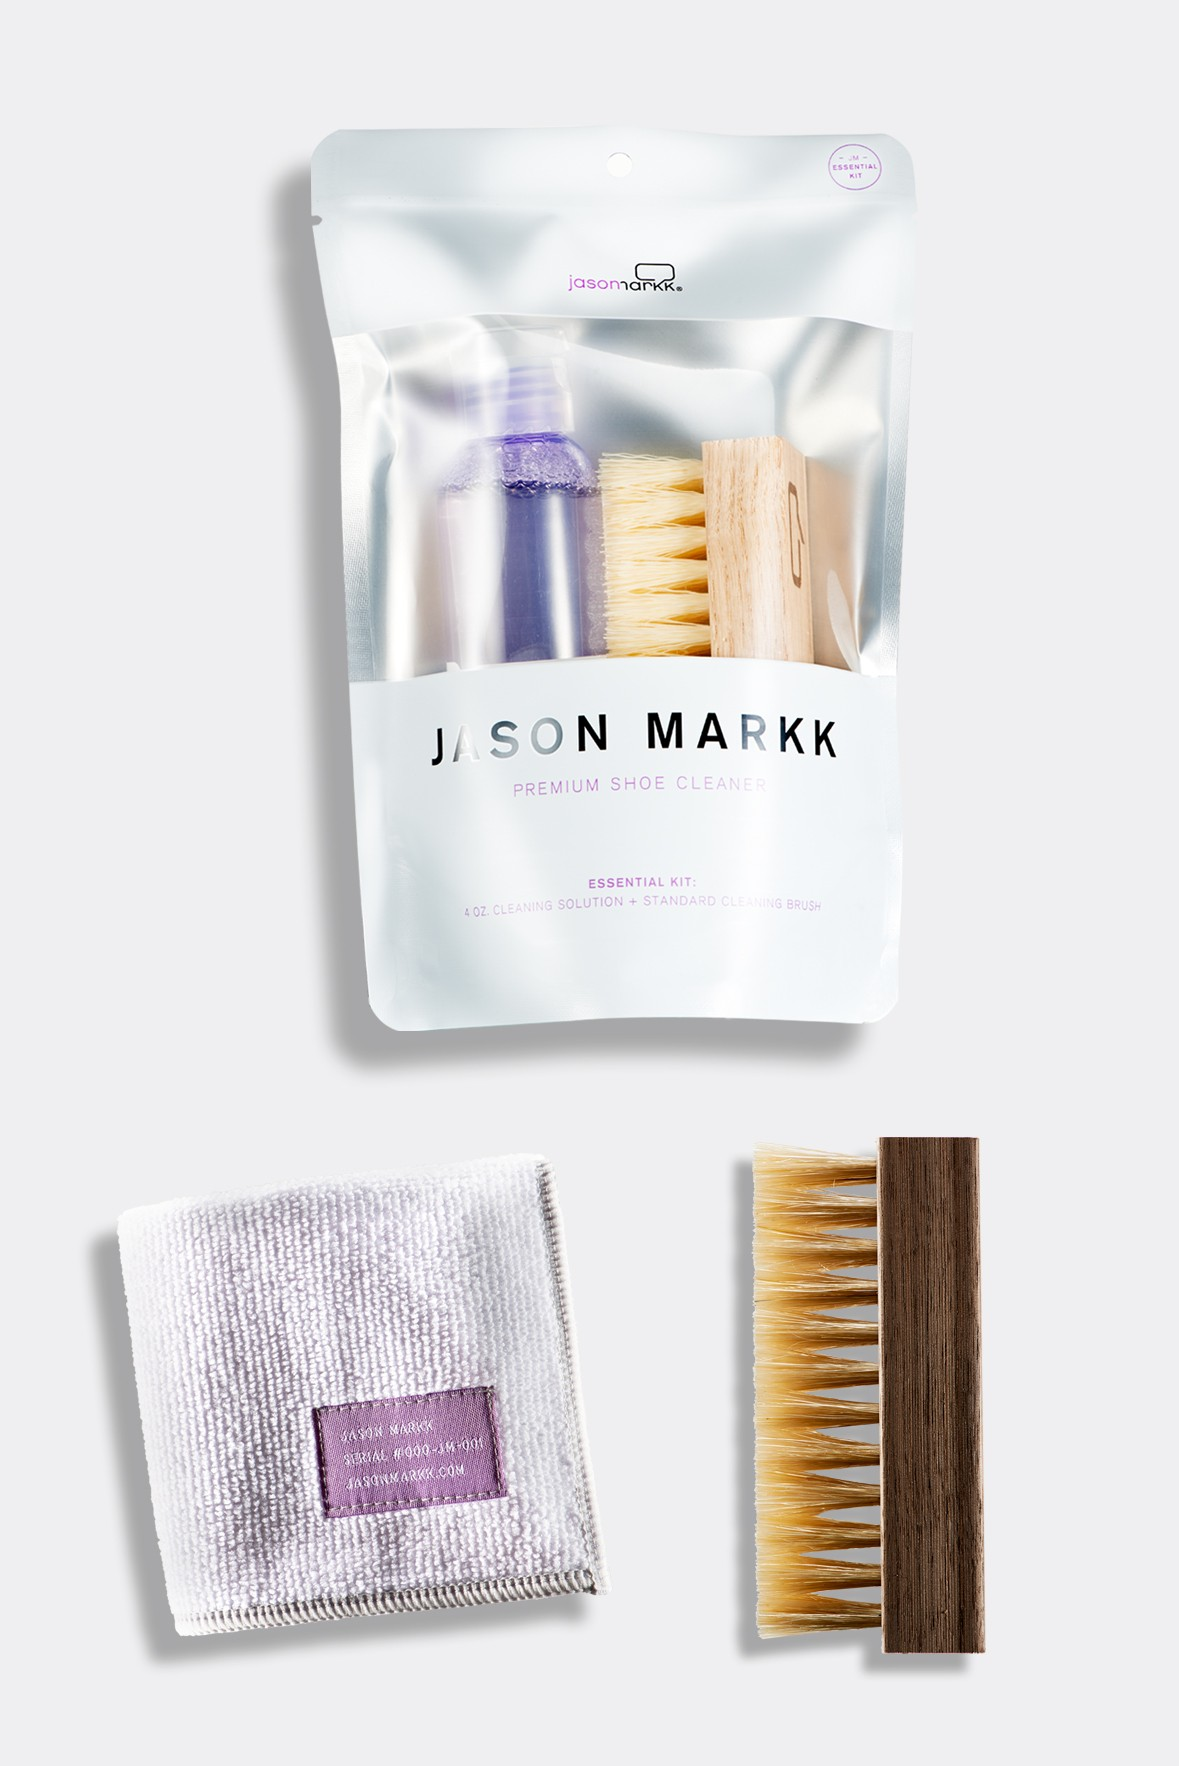 1. Jason Markk Essentials Bundle - Hard sole shoes are indeed the gentleman's choice, but what about those who swear by sneakers? We can't forget about them and with sneakers costing $200+ or more these days you would want to help find ways to preserve those bad boys as long as possible. That's where this practical yet necessary shoe cleaning kit from Jason Markk comes in handy. Thou shall not walk around in dirty sneakers!